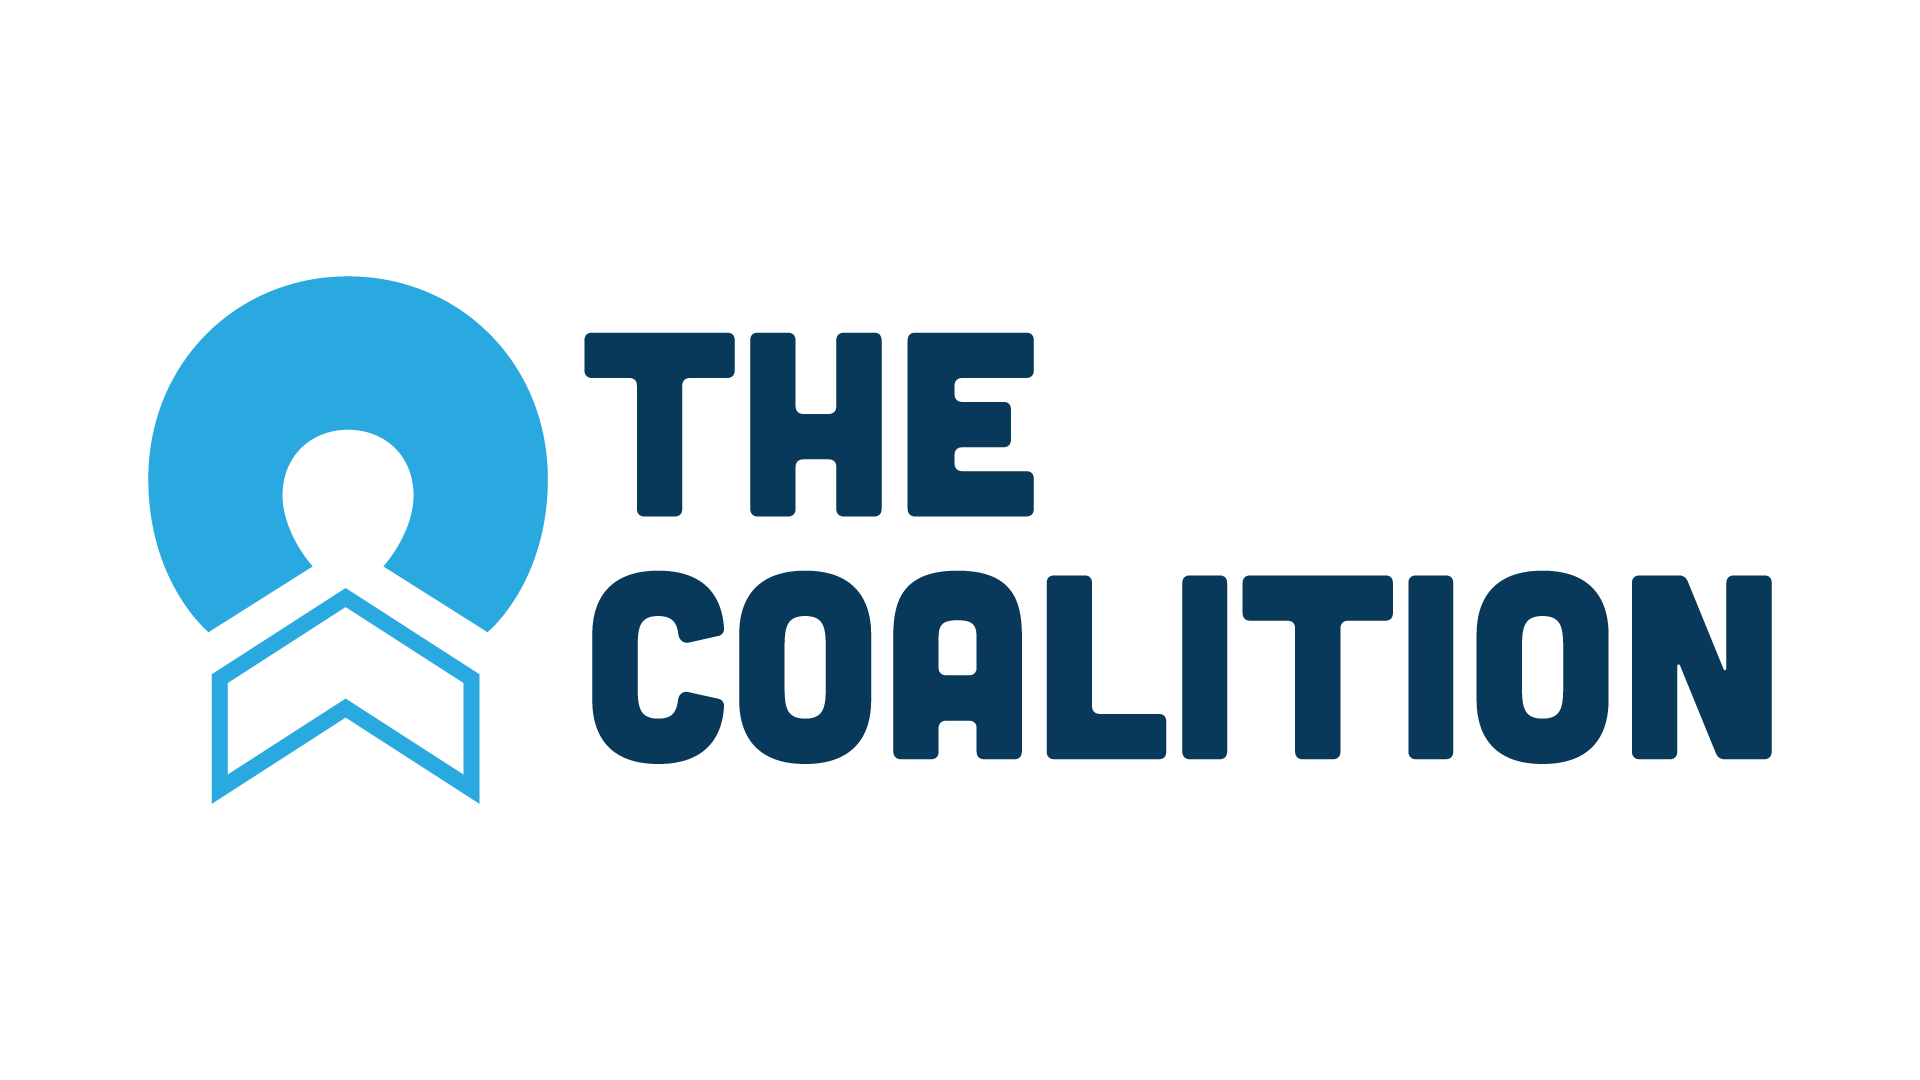 COALITION-LOGO-FULL-COLOR-1